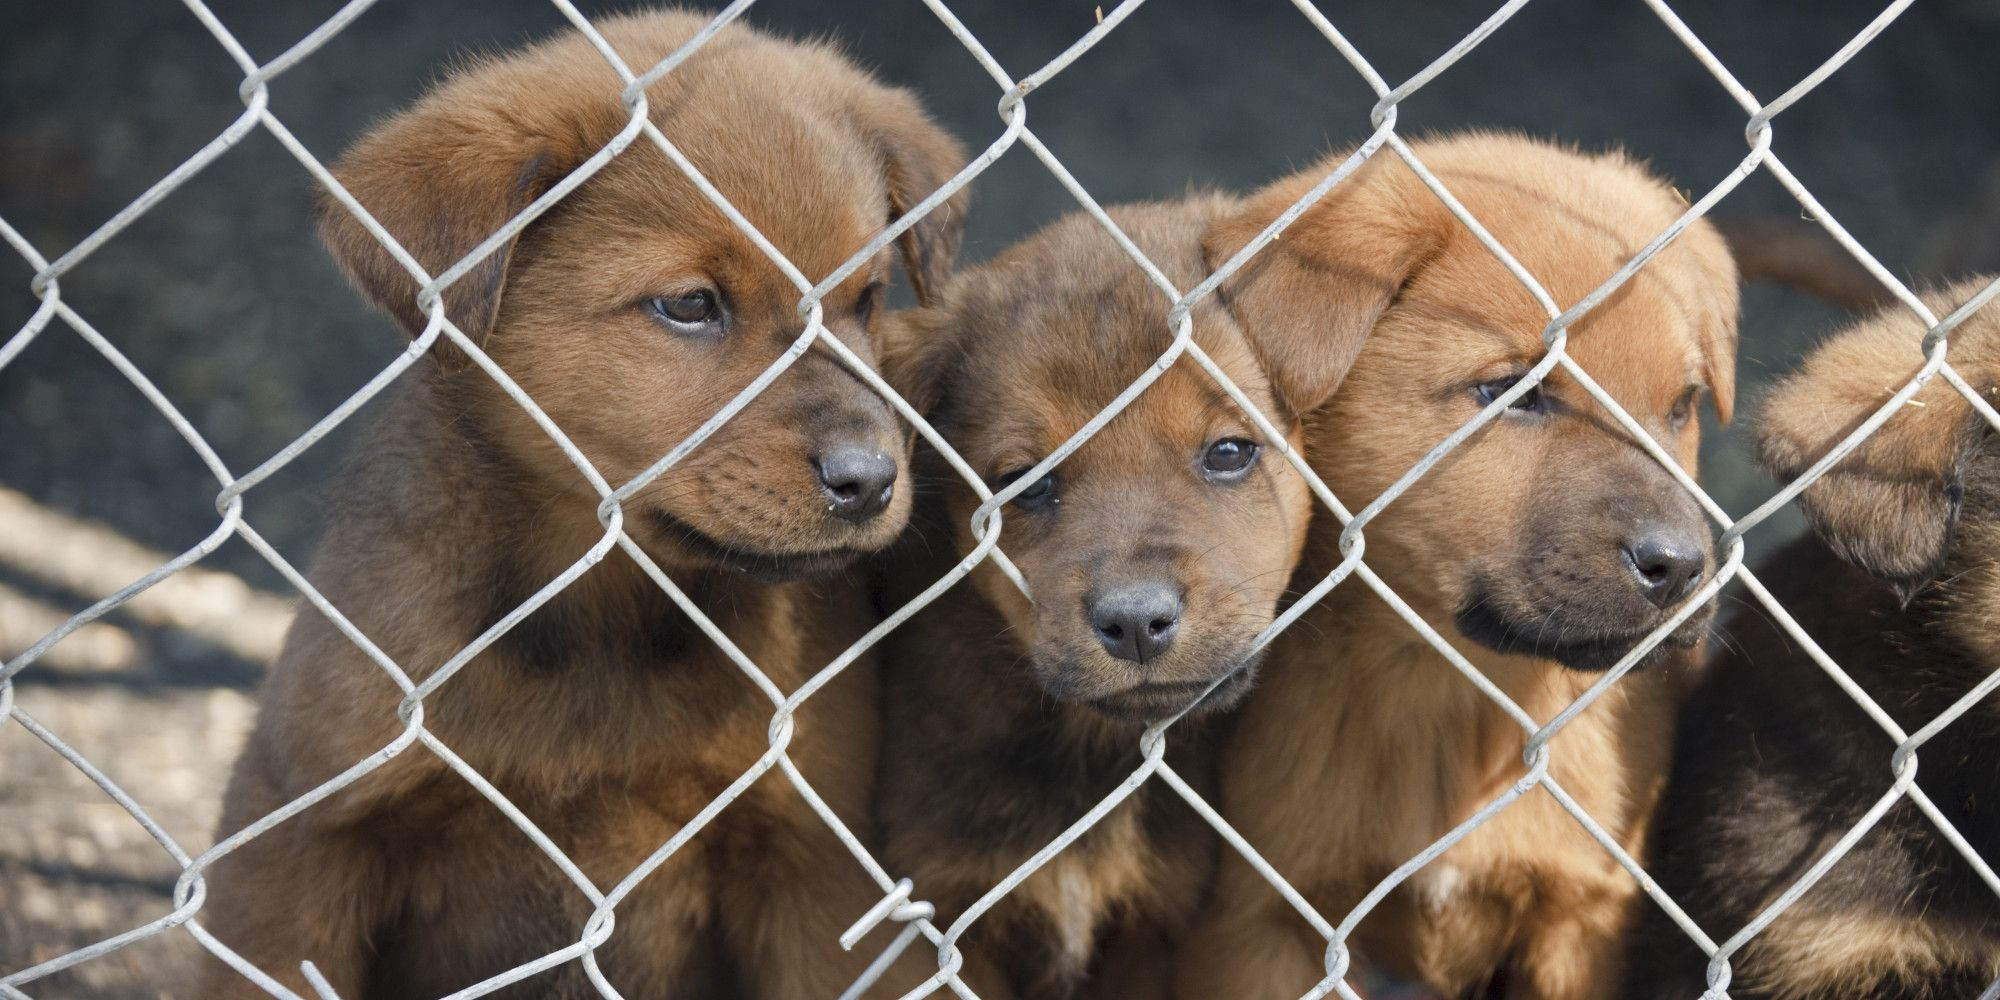 Anti Puppy Mill Movement Gets Another Big Win Puppy Mills